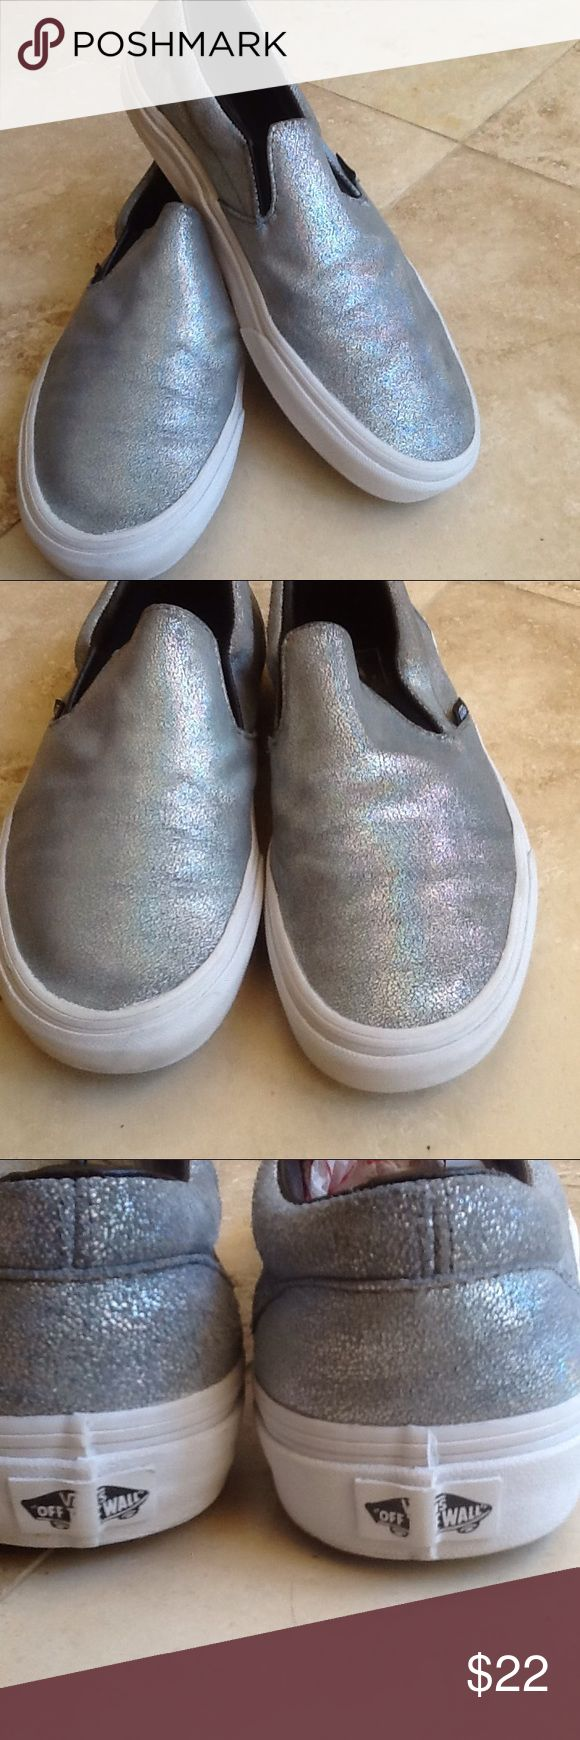 VANS silver metallic slip ons Ladies size 10... Silver slip ons. In great condition. Ask for more info or pictures if needed before buying. Priced low for quick sale..PRICE FIRM Vans Shoes Sneakers